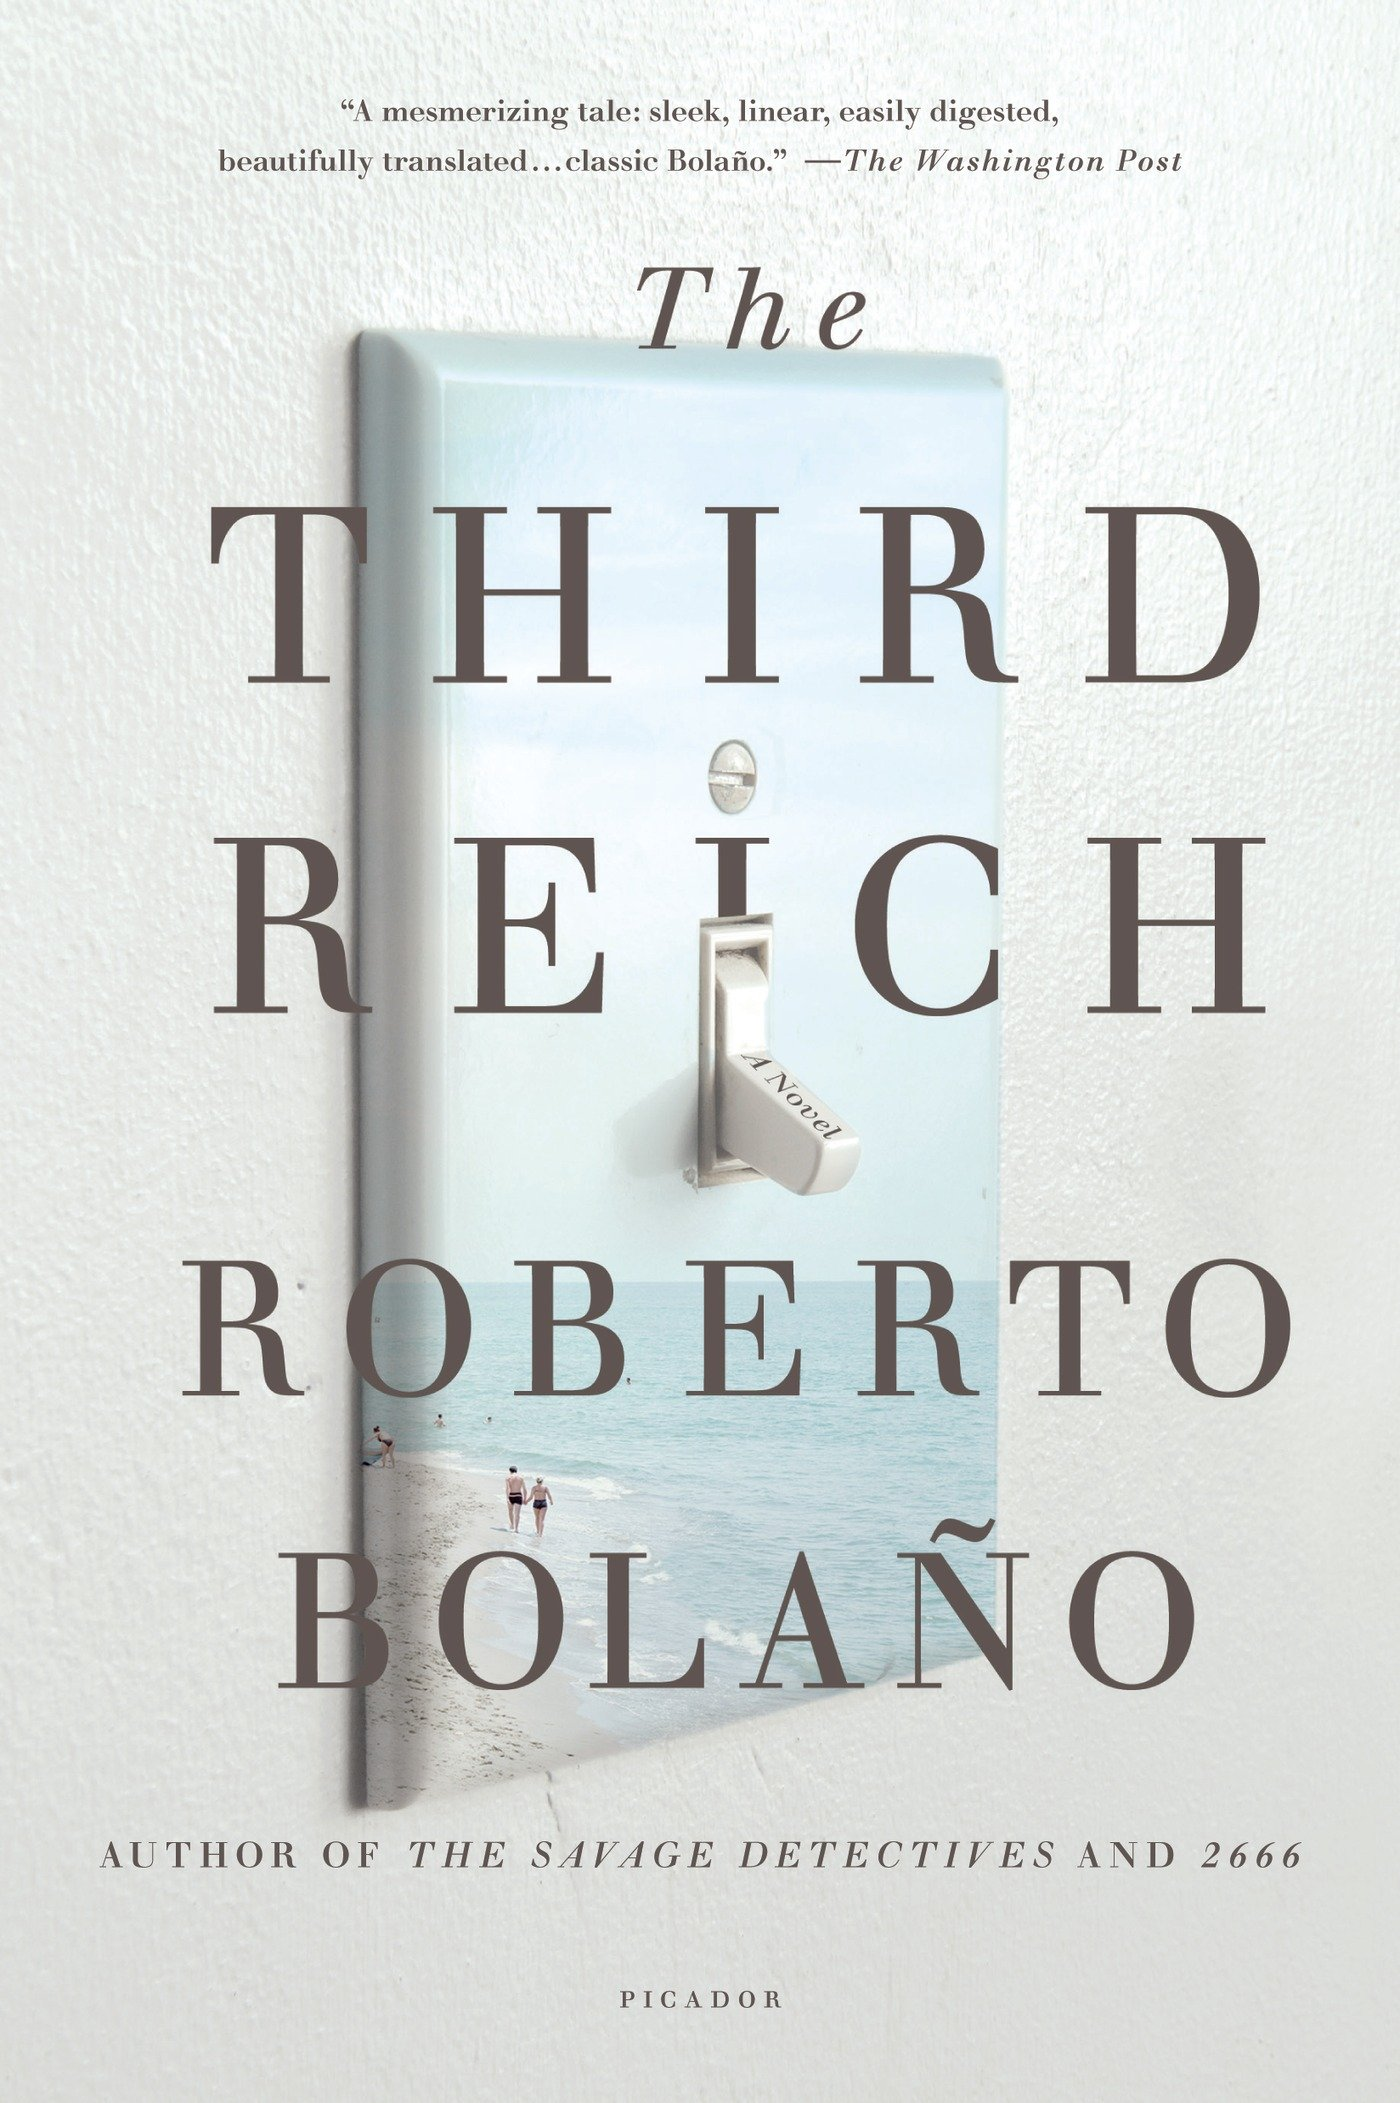 Cash Pool Führer An Enjoyable Beginning Roberto Bolaño S The Third Reich Slant